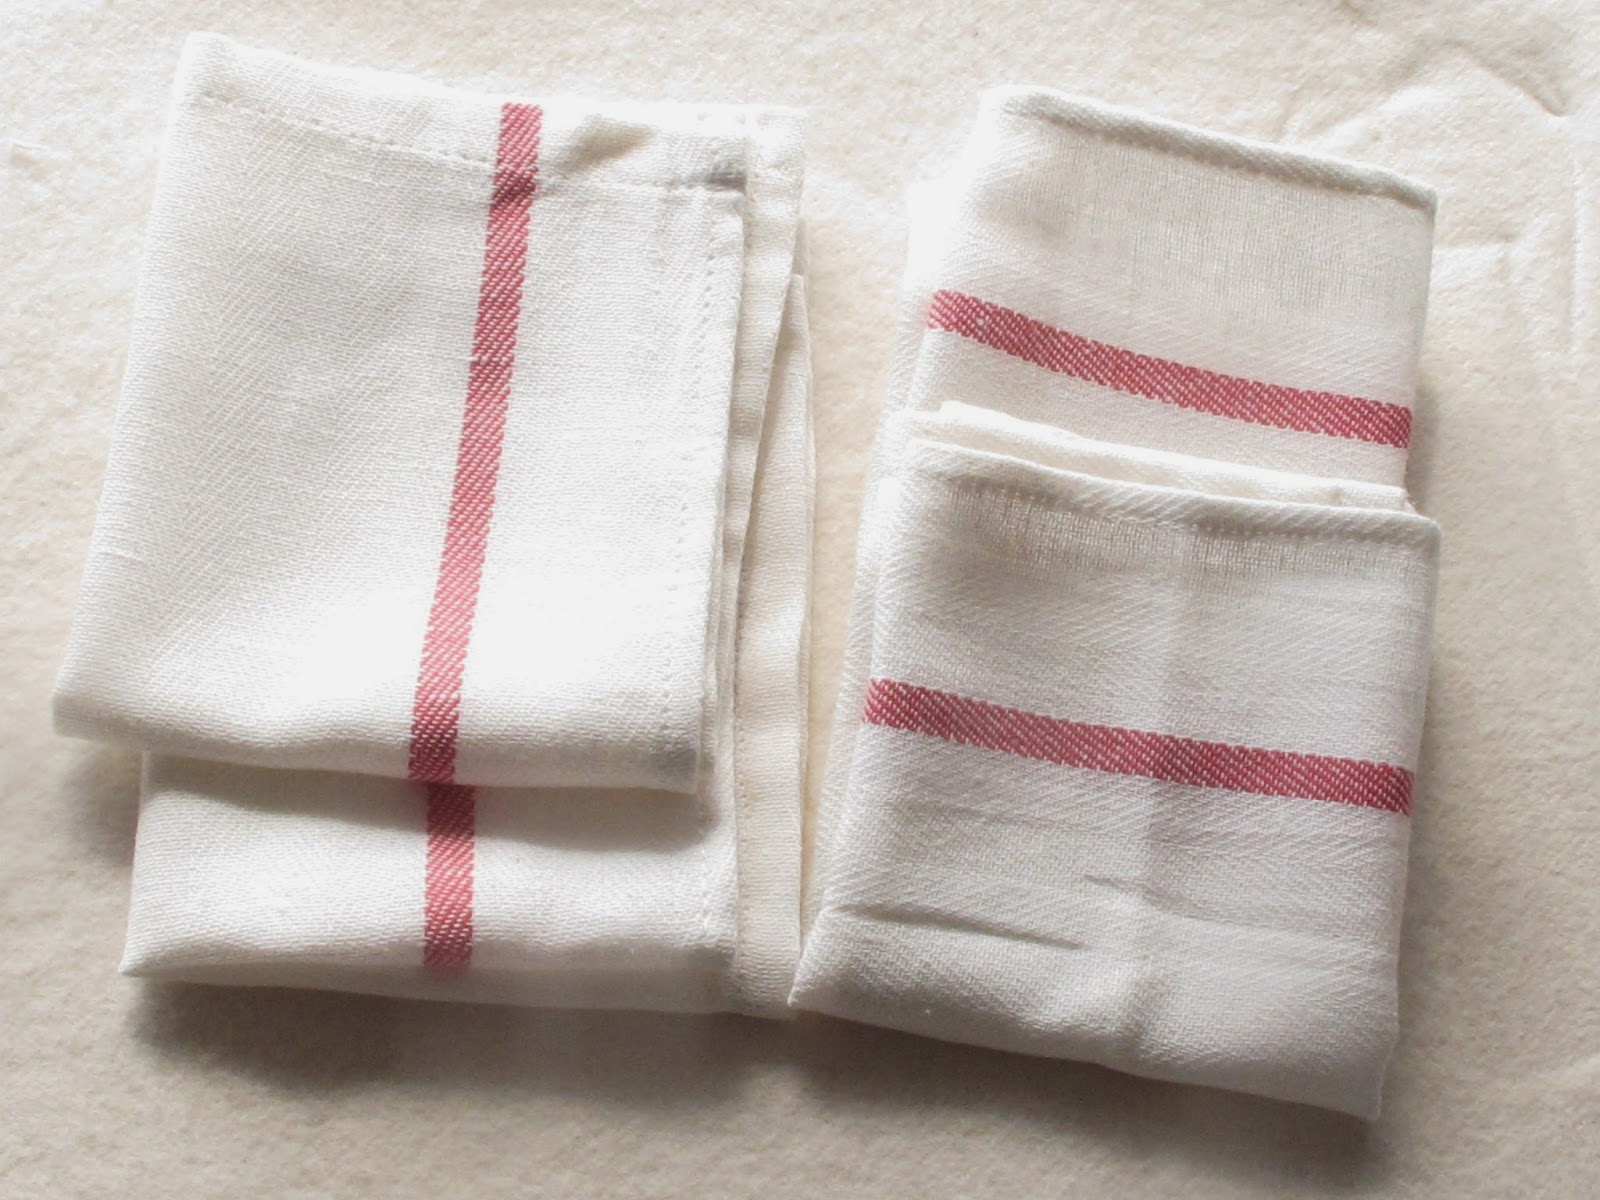 Superbe Then I Sewed Along The Edge Of Each Of My Newly Folded Hems, And Voila!  Four Cloths From Each Of The Tea Towels.